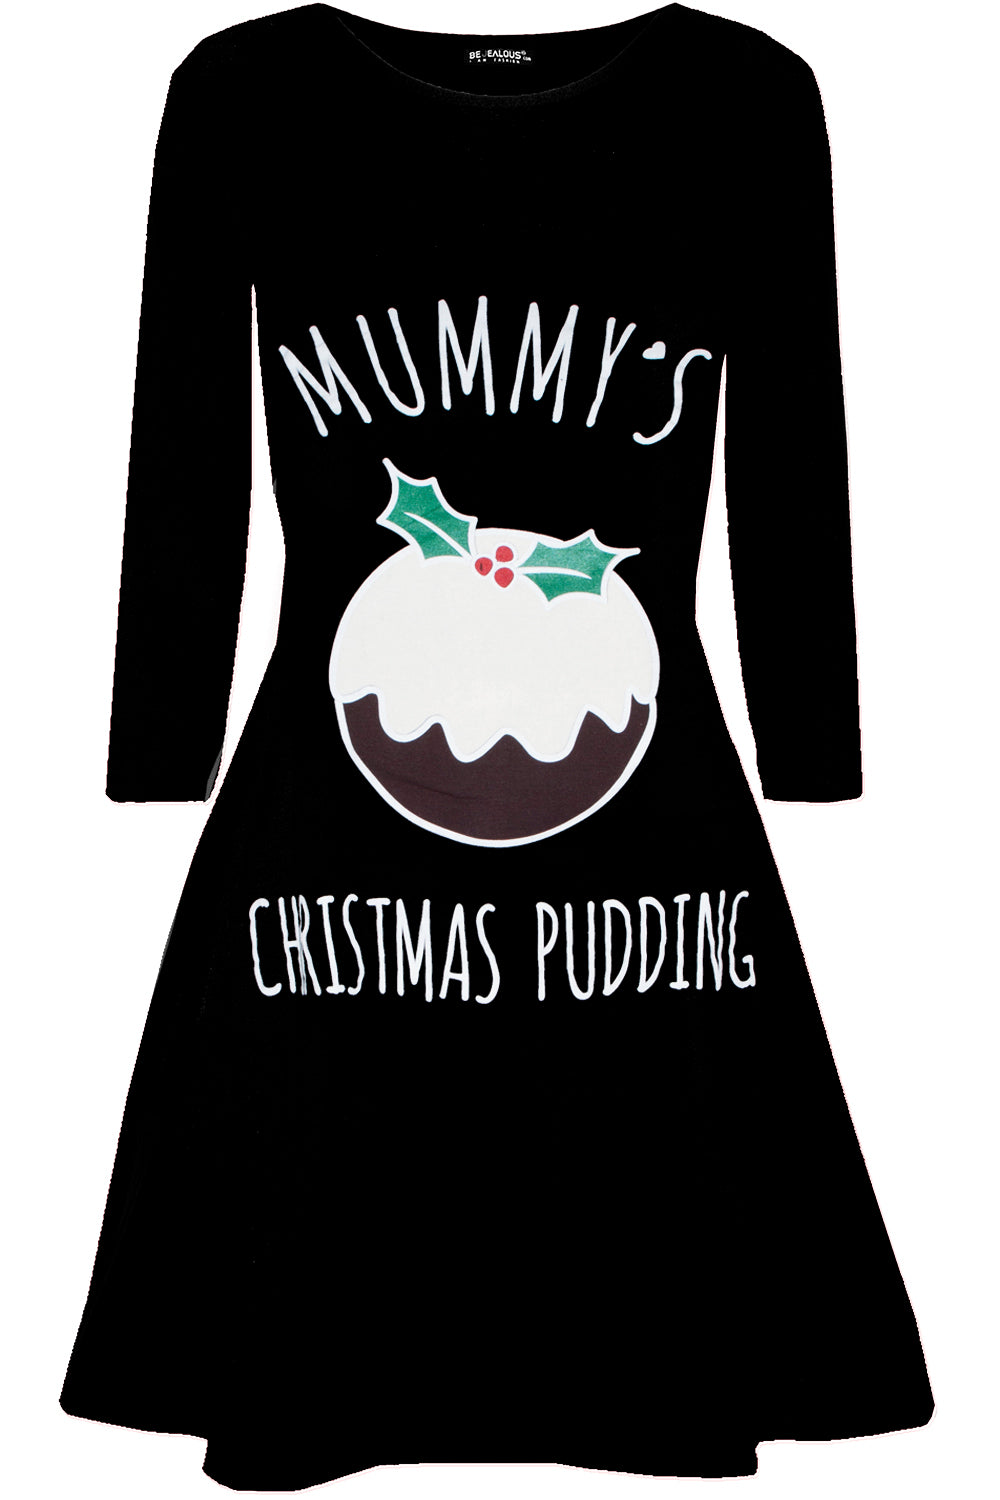 Mummy's Christmas Pudding Maternity Dress - bejealous-com